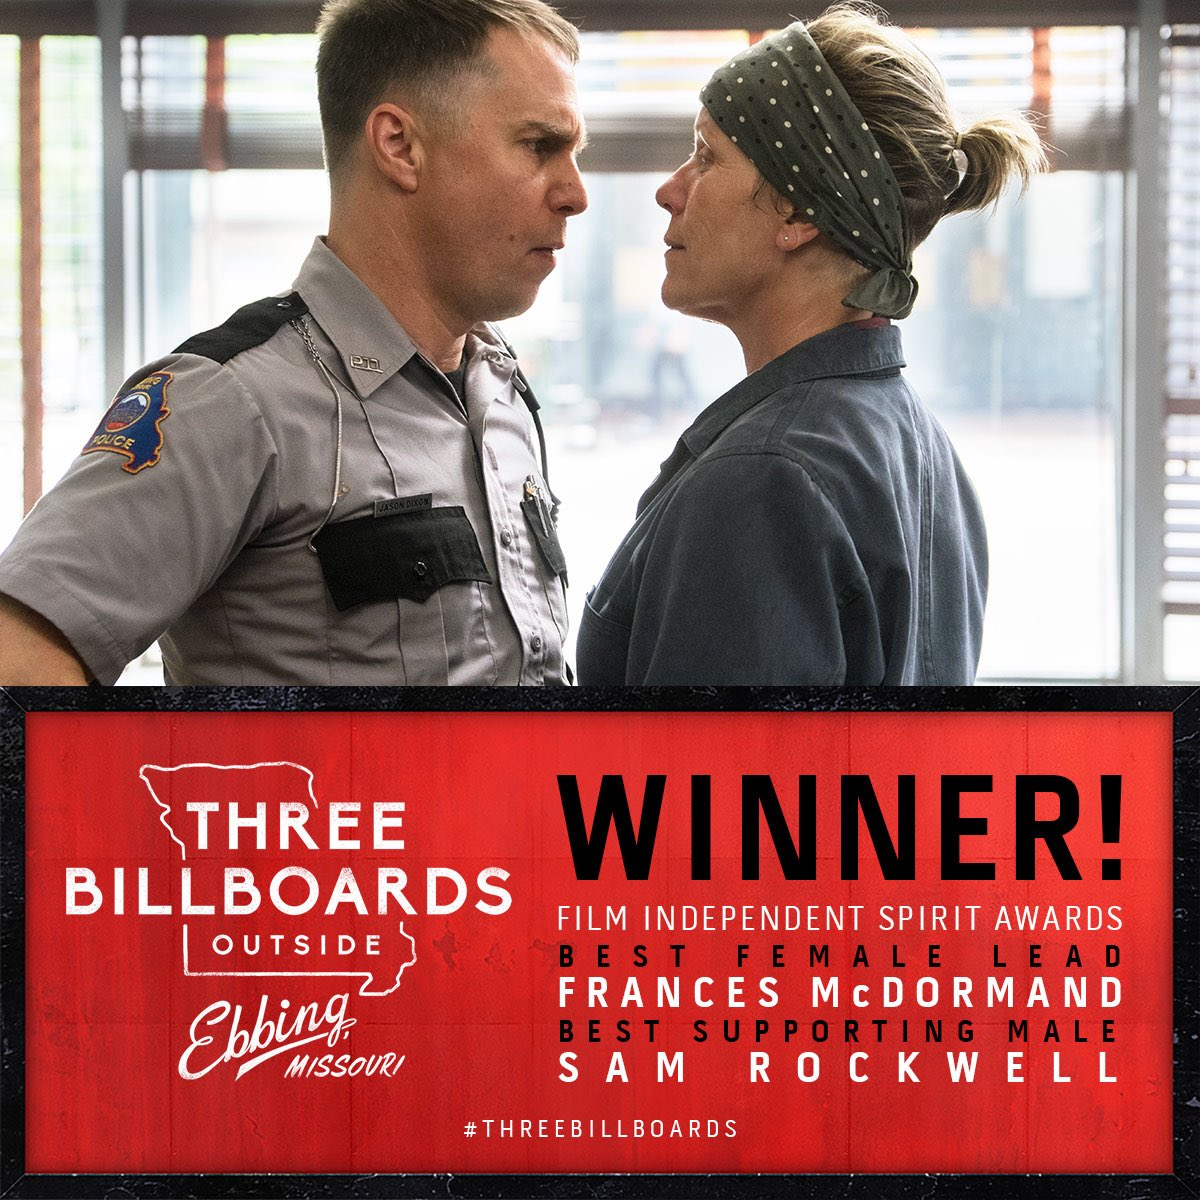 Blueprint pictures blueprintpics twitter congratulations to threebillboards on its 2 wins at the filmindependent spiritawards including best female lead frances mcdormand and best male lead sam malvernweather Images